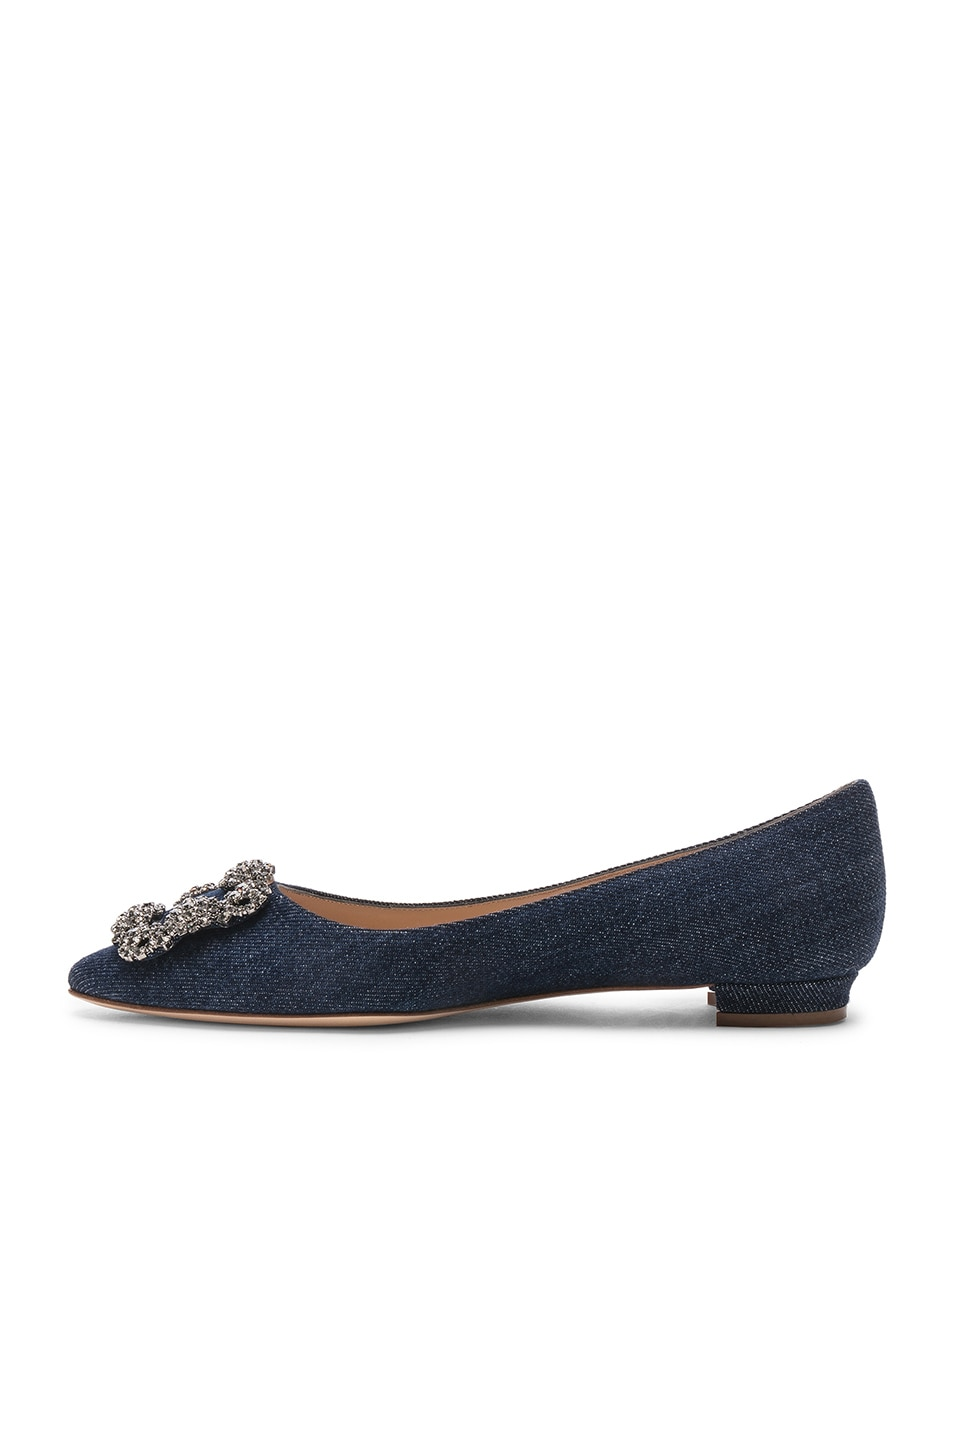 Image 5 of Manolo Blahnik Hangisiflat 10 Pea Flat in Jeans Delave